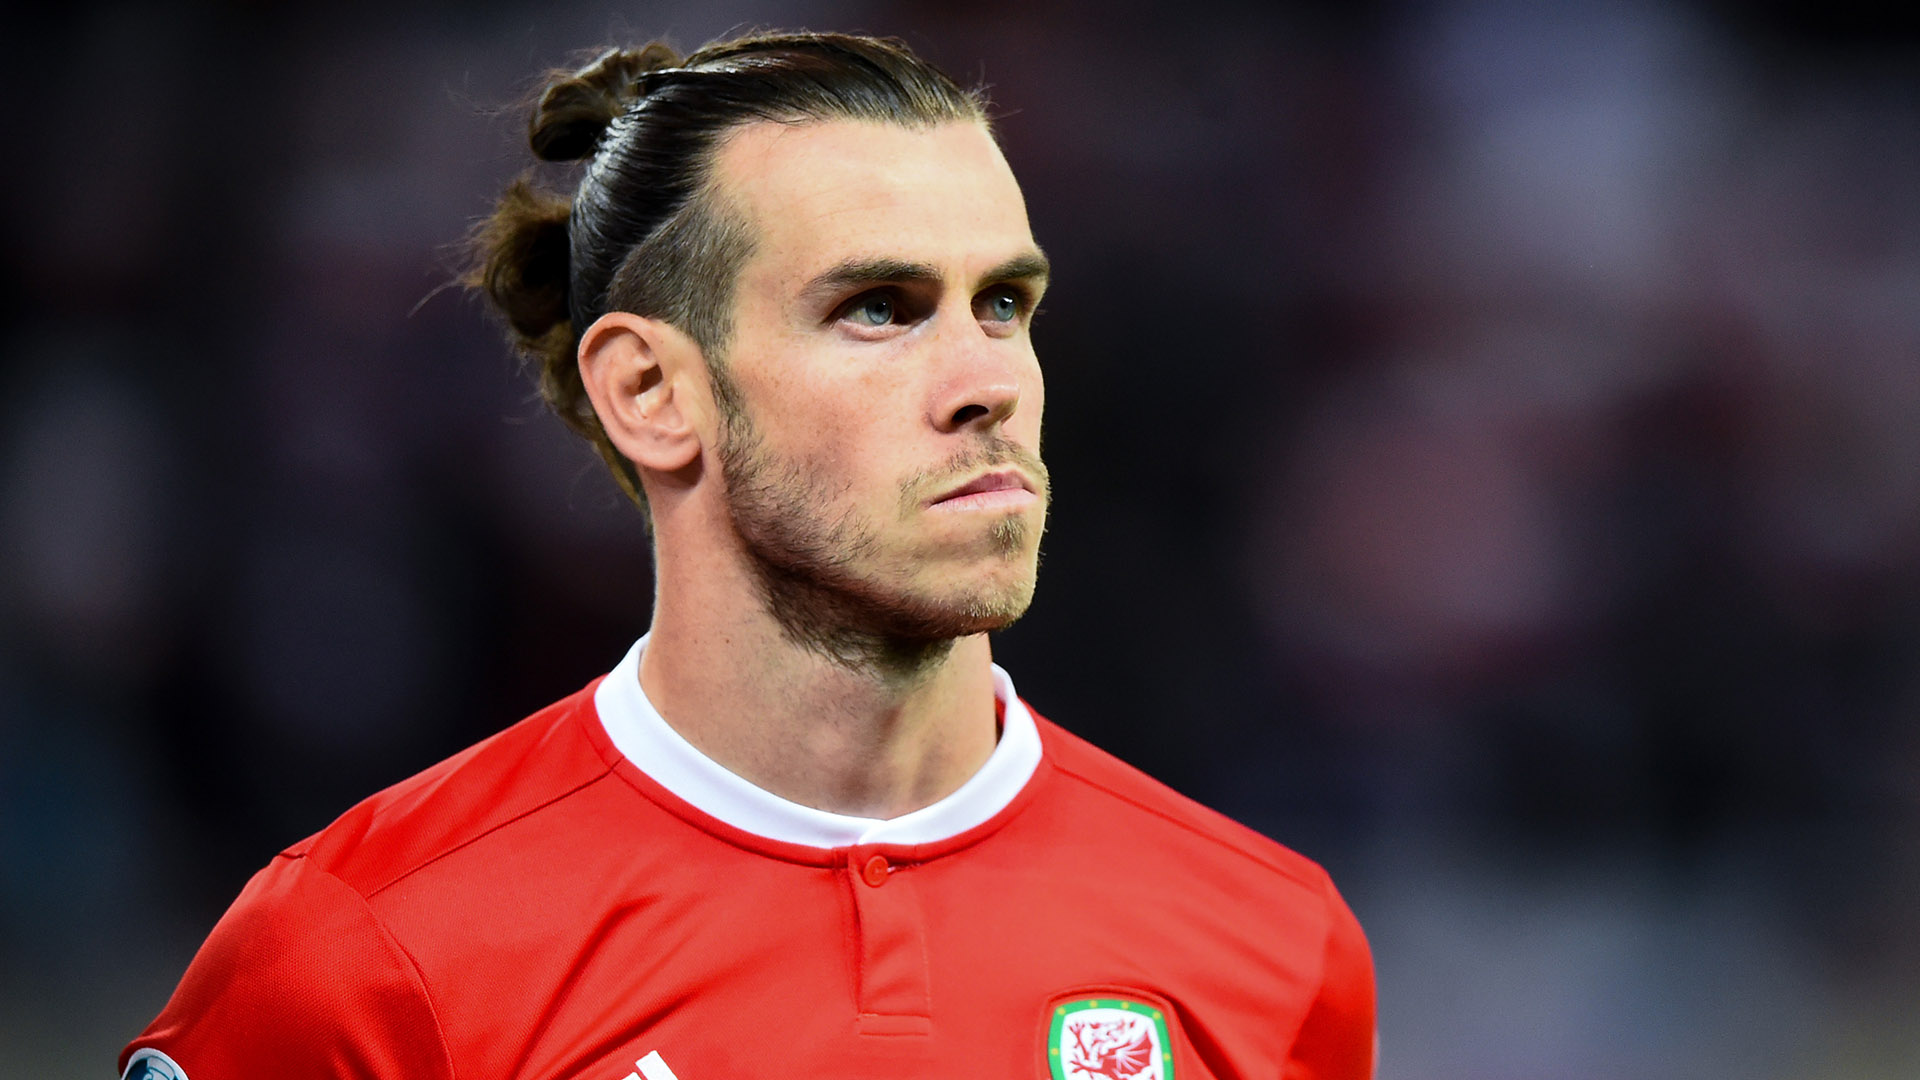 Injured Bale returns to Wales squad despite missing last four Real Madrid matches